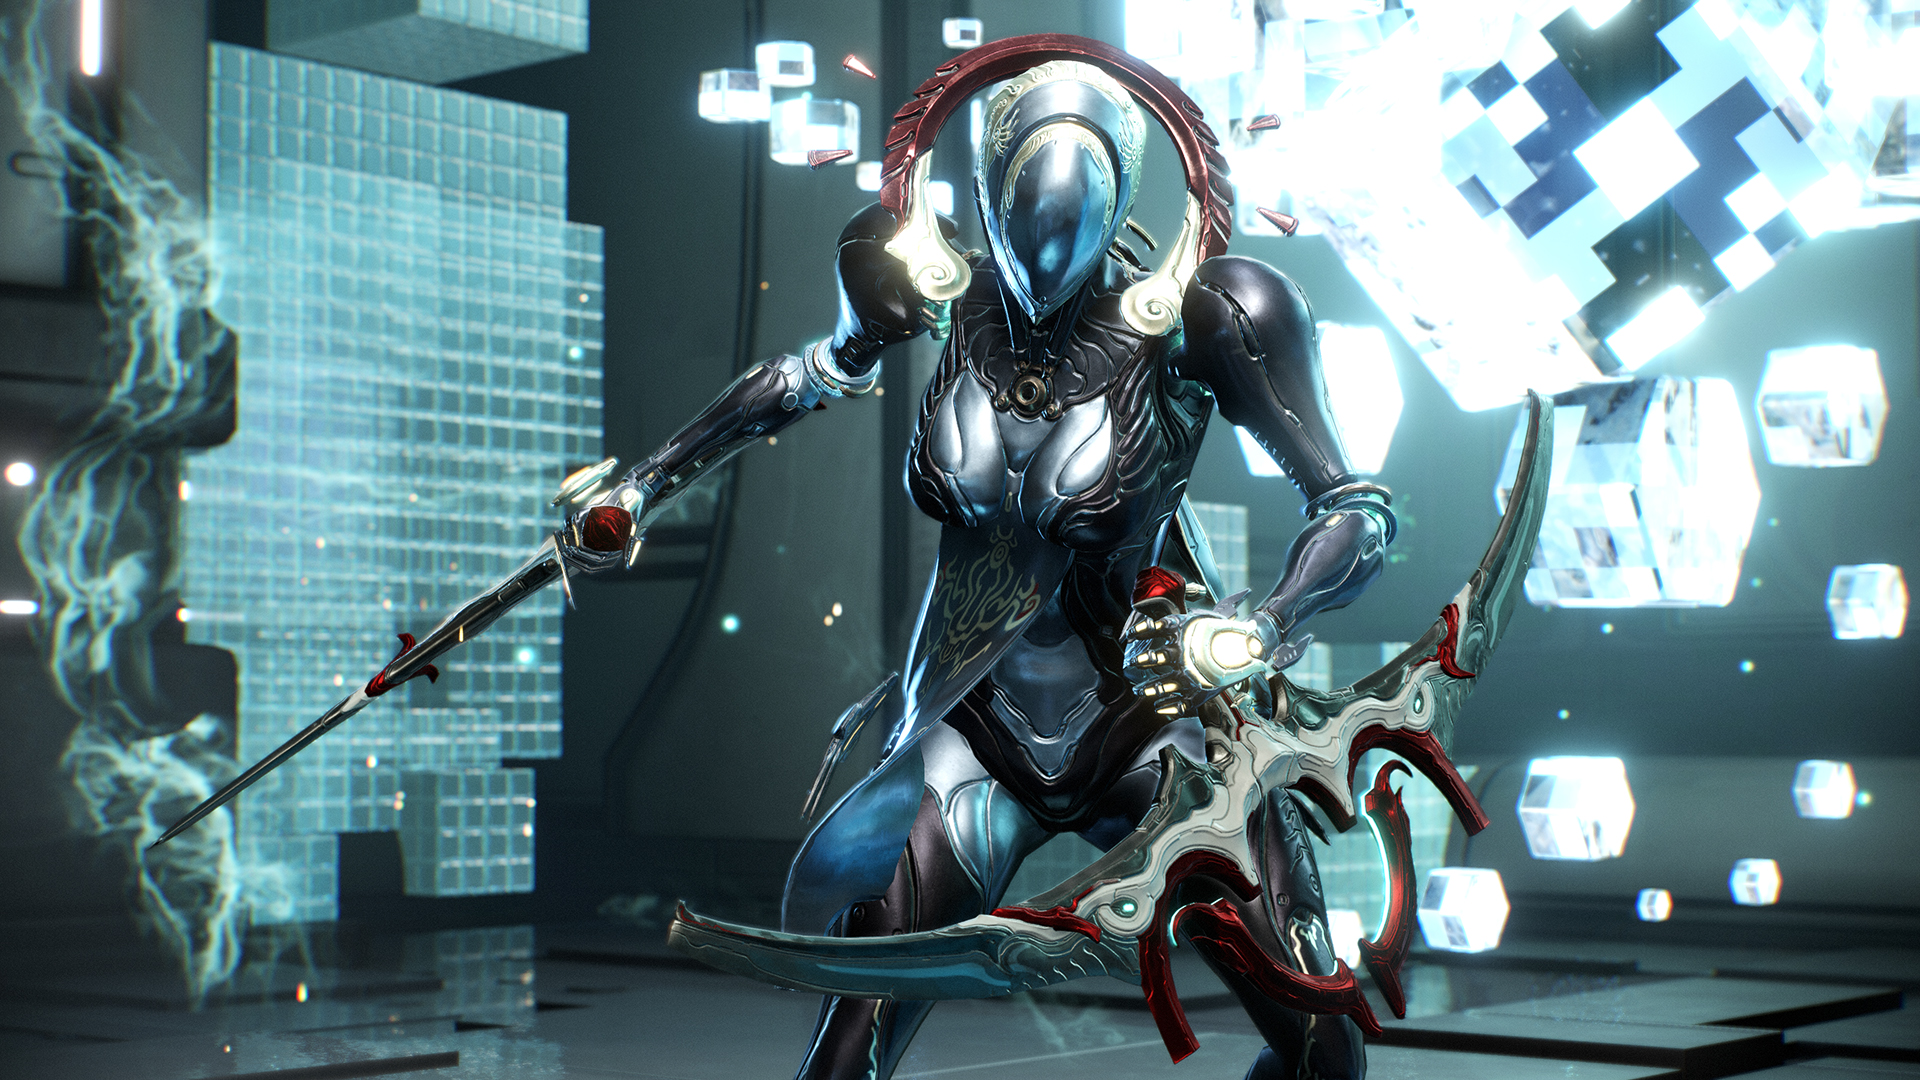 Warframe S Plains Of Eidolon Launches Next Week On Pc In November